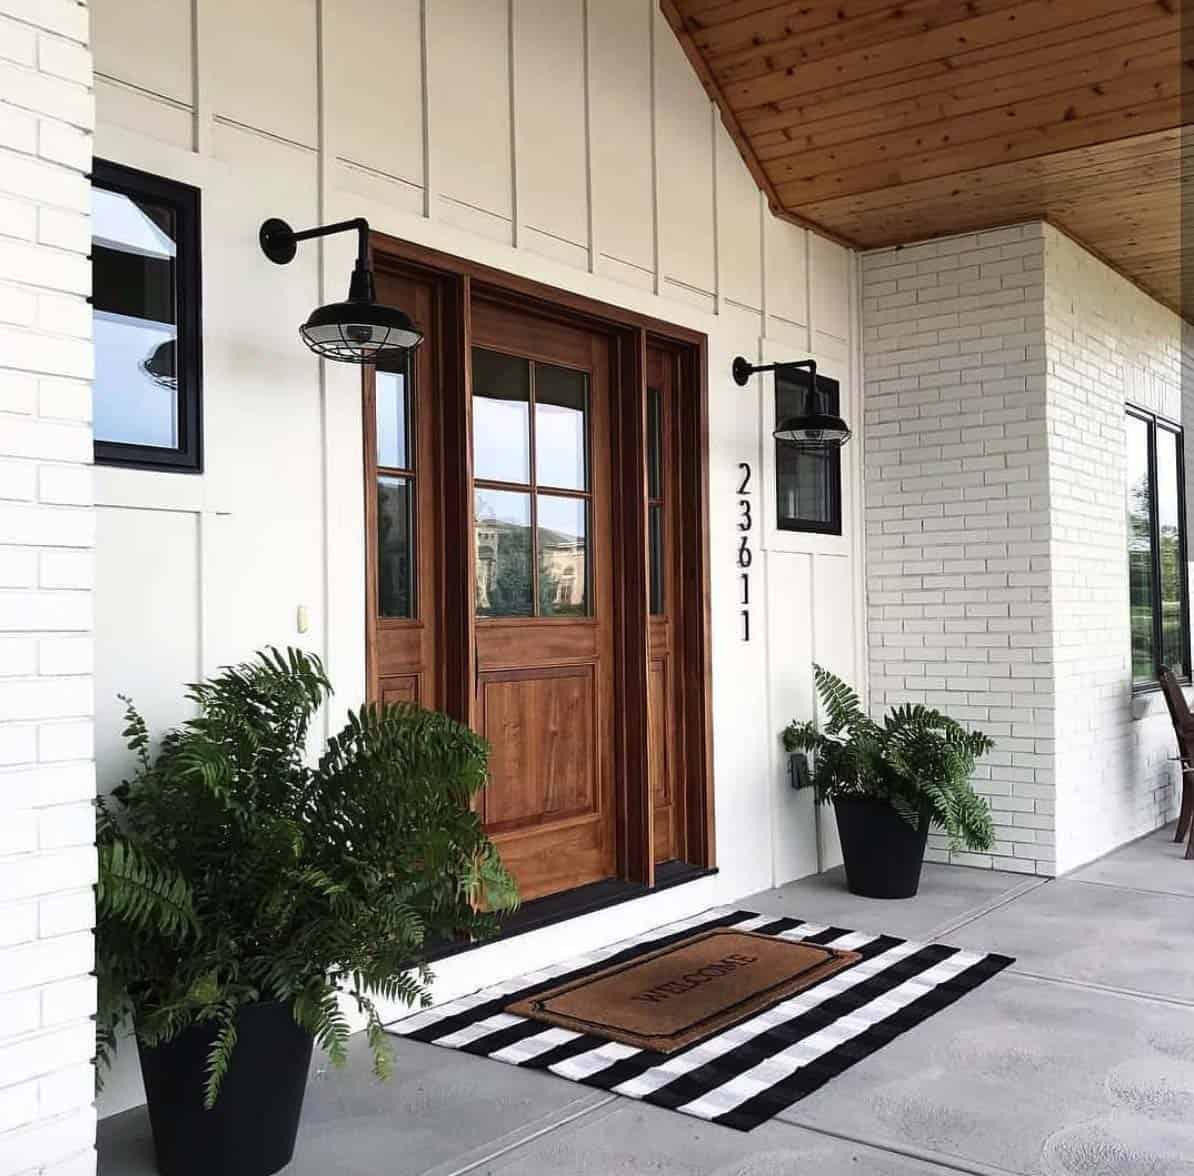 farmhouse-style-porch-decorating